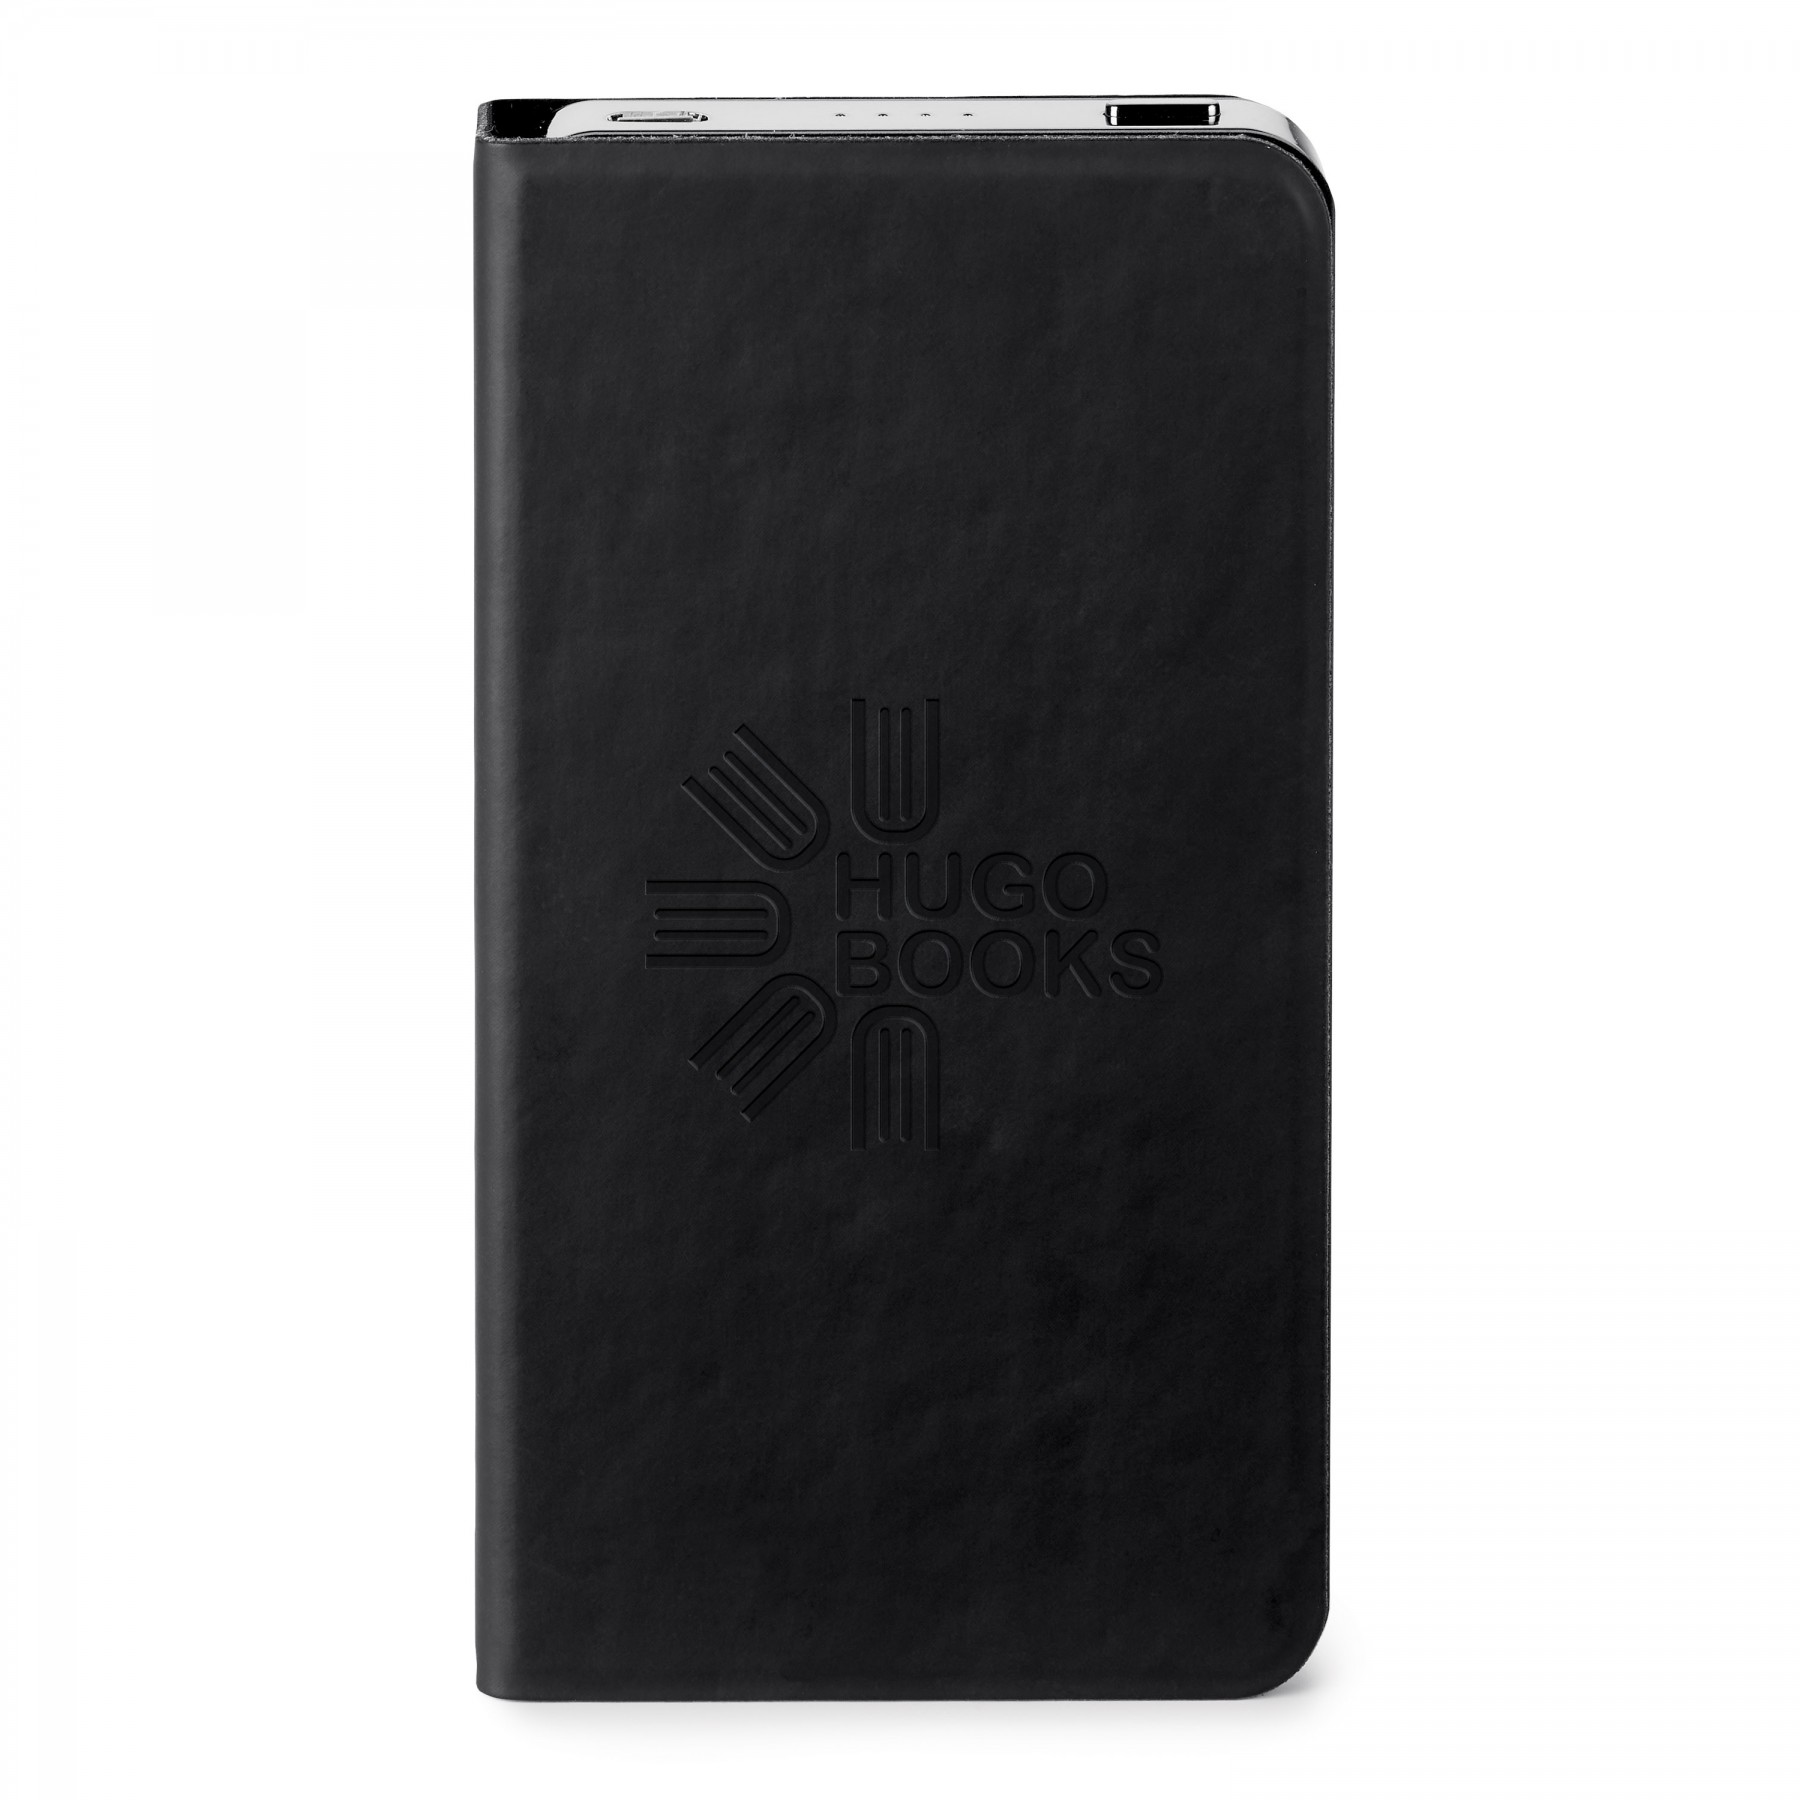 DONALD JUNIOR 6,000 mAh POWER BANK, T135, Debossed Logo